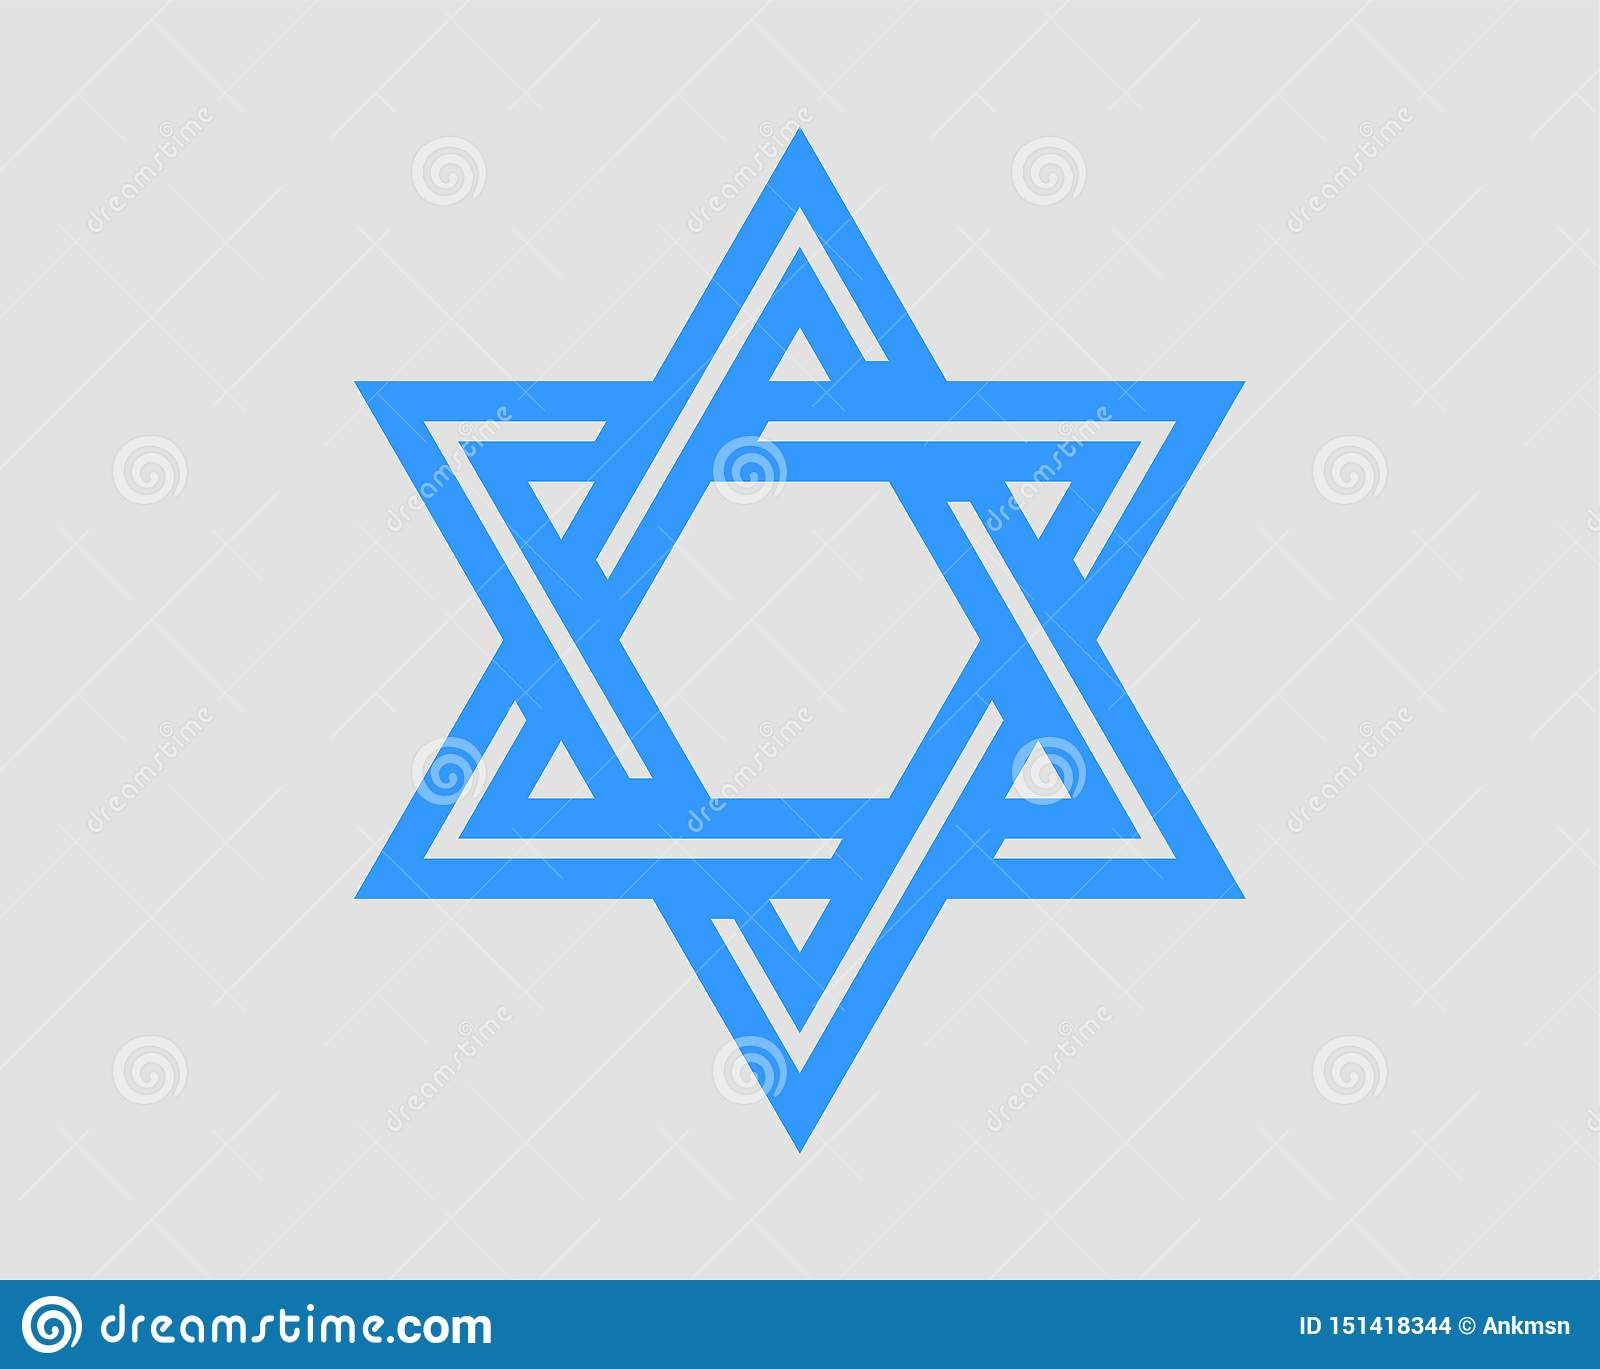 Jewish Star Of David Icon Vector Six Pointed Stars Symbol Stock Vector Illustration Of Israeli Element 151418344